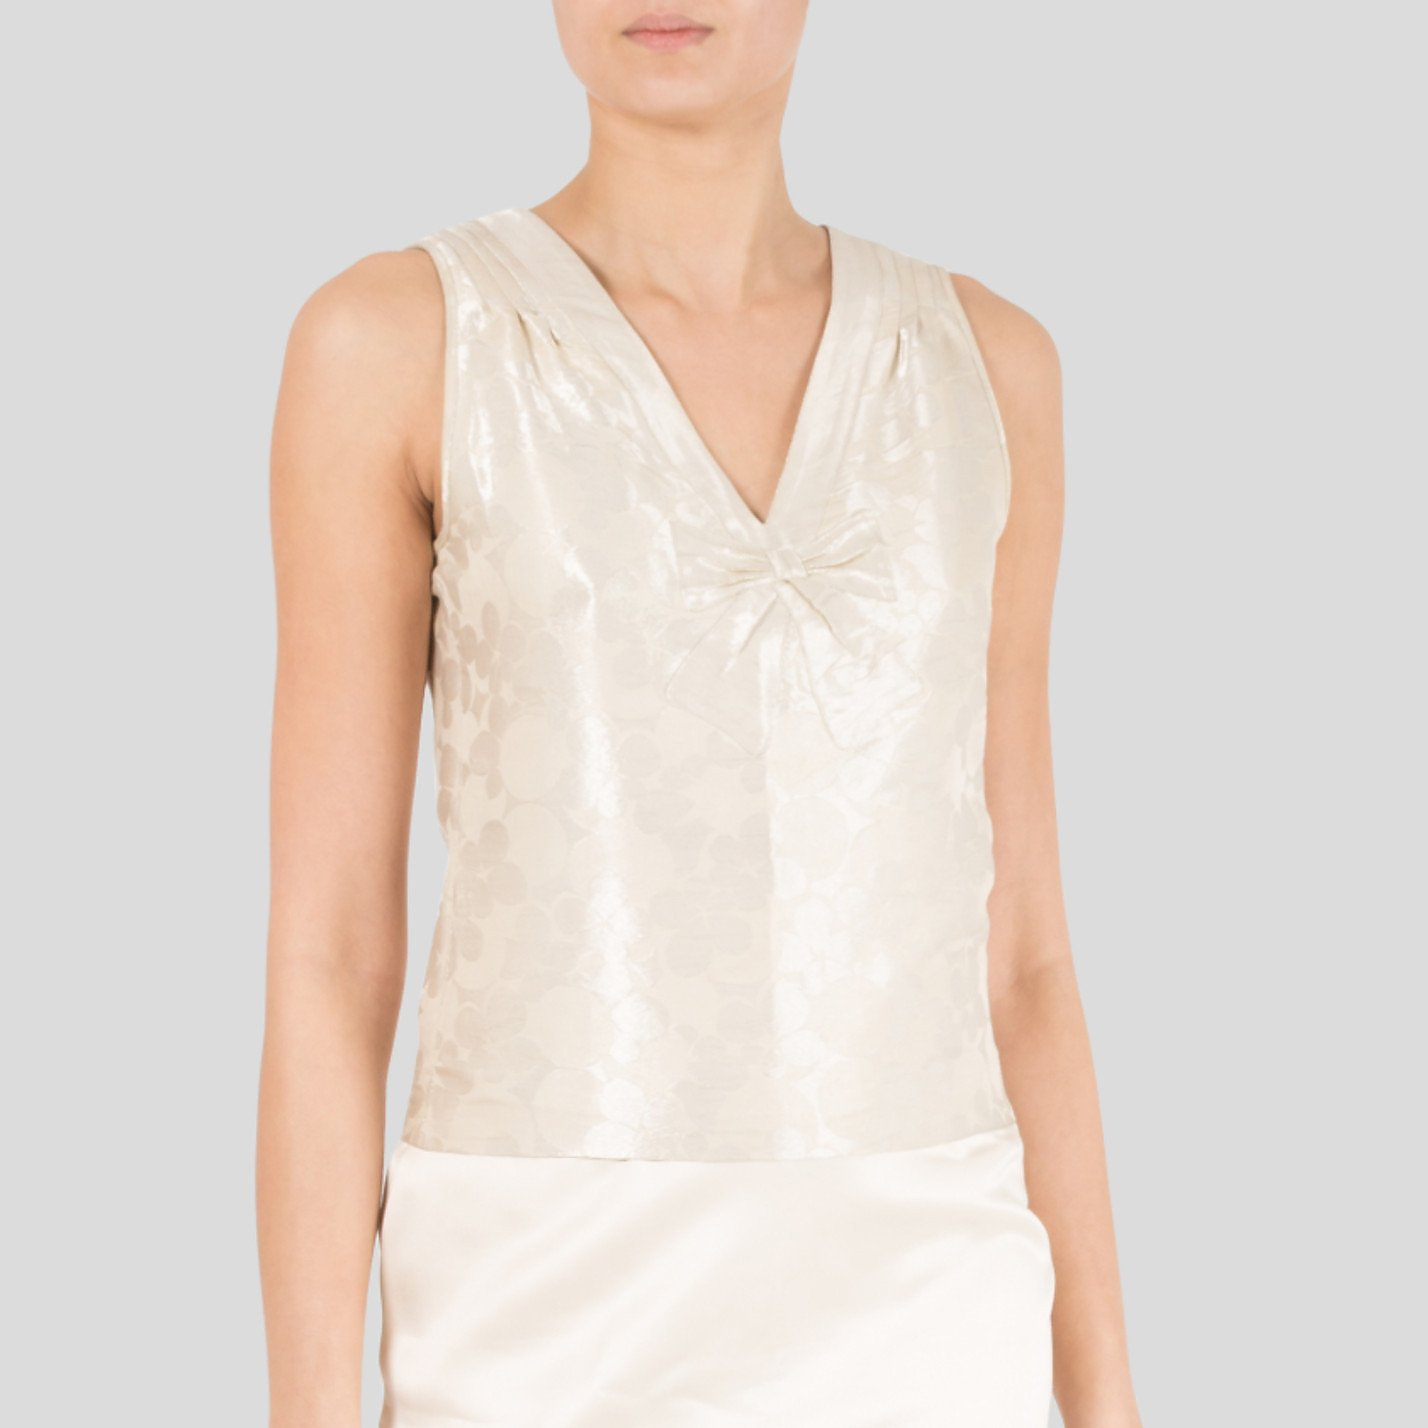 Marc Jacobs Silk-Blend Top With Bow Embellishment